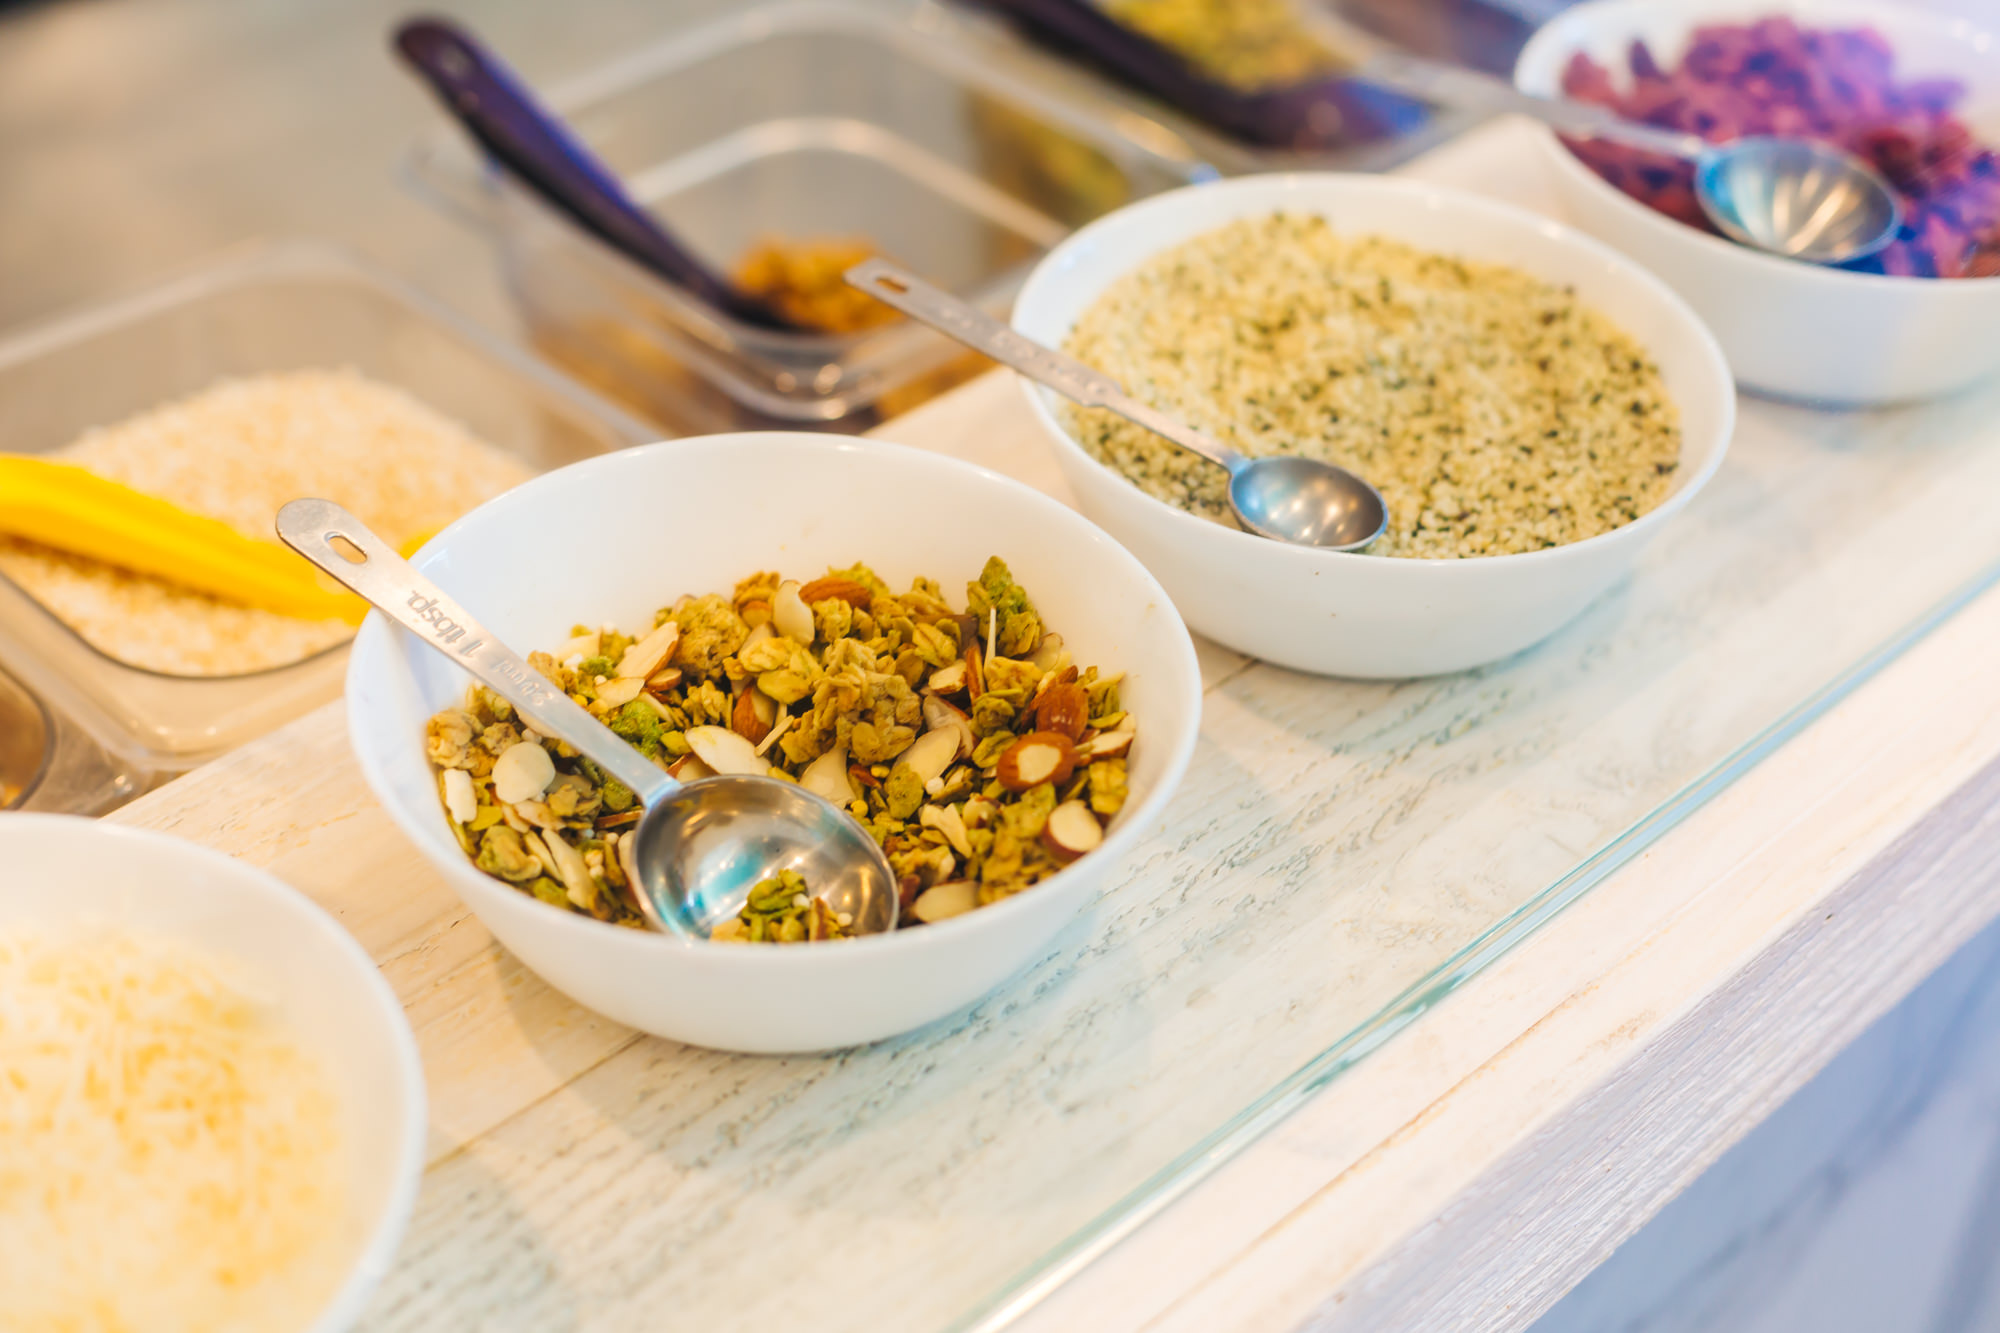 Healthy toppings for your Super Bowl like matcha granola, crunchy quinoa and coconut flakes